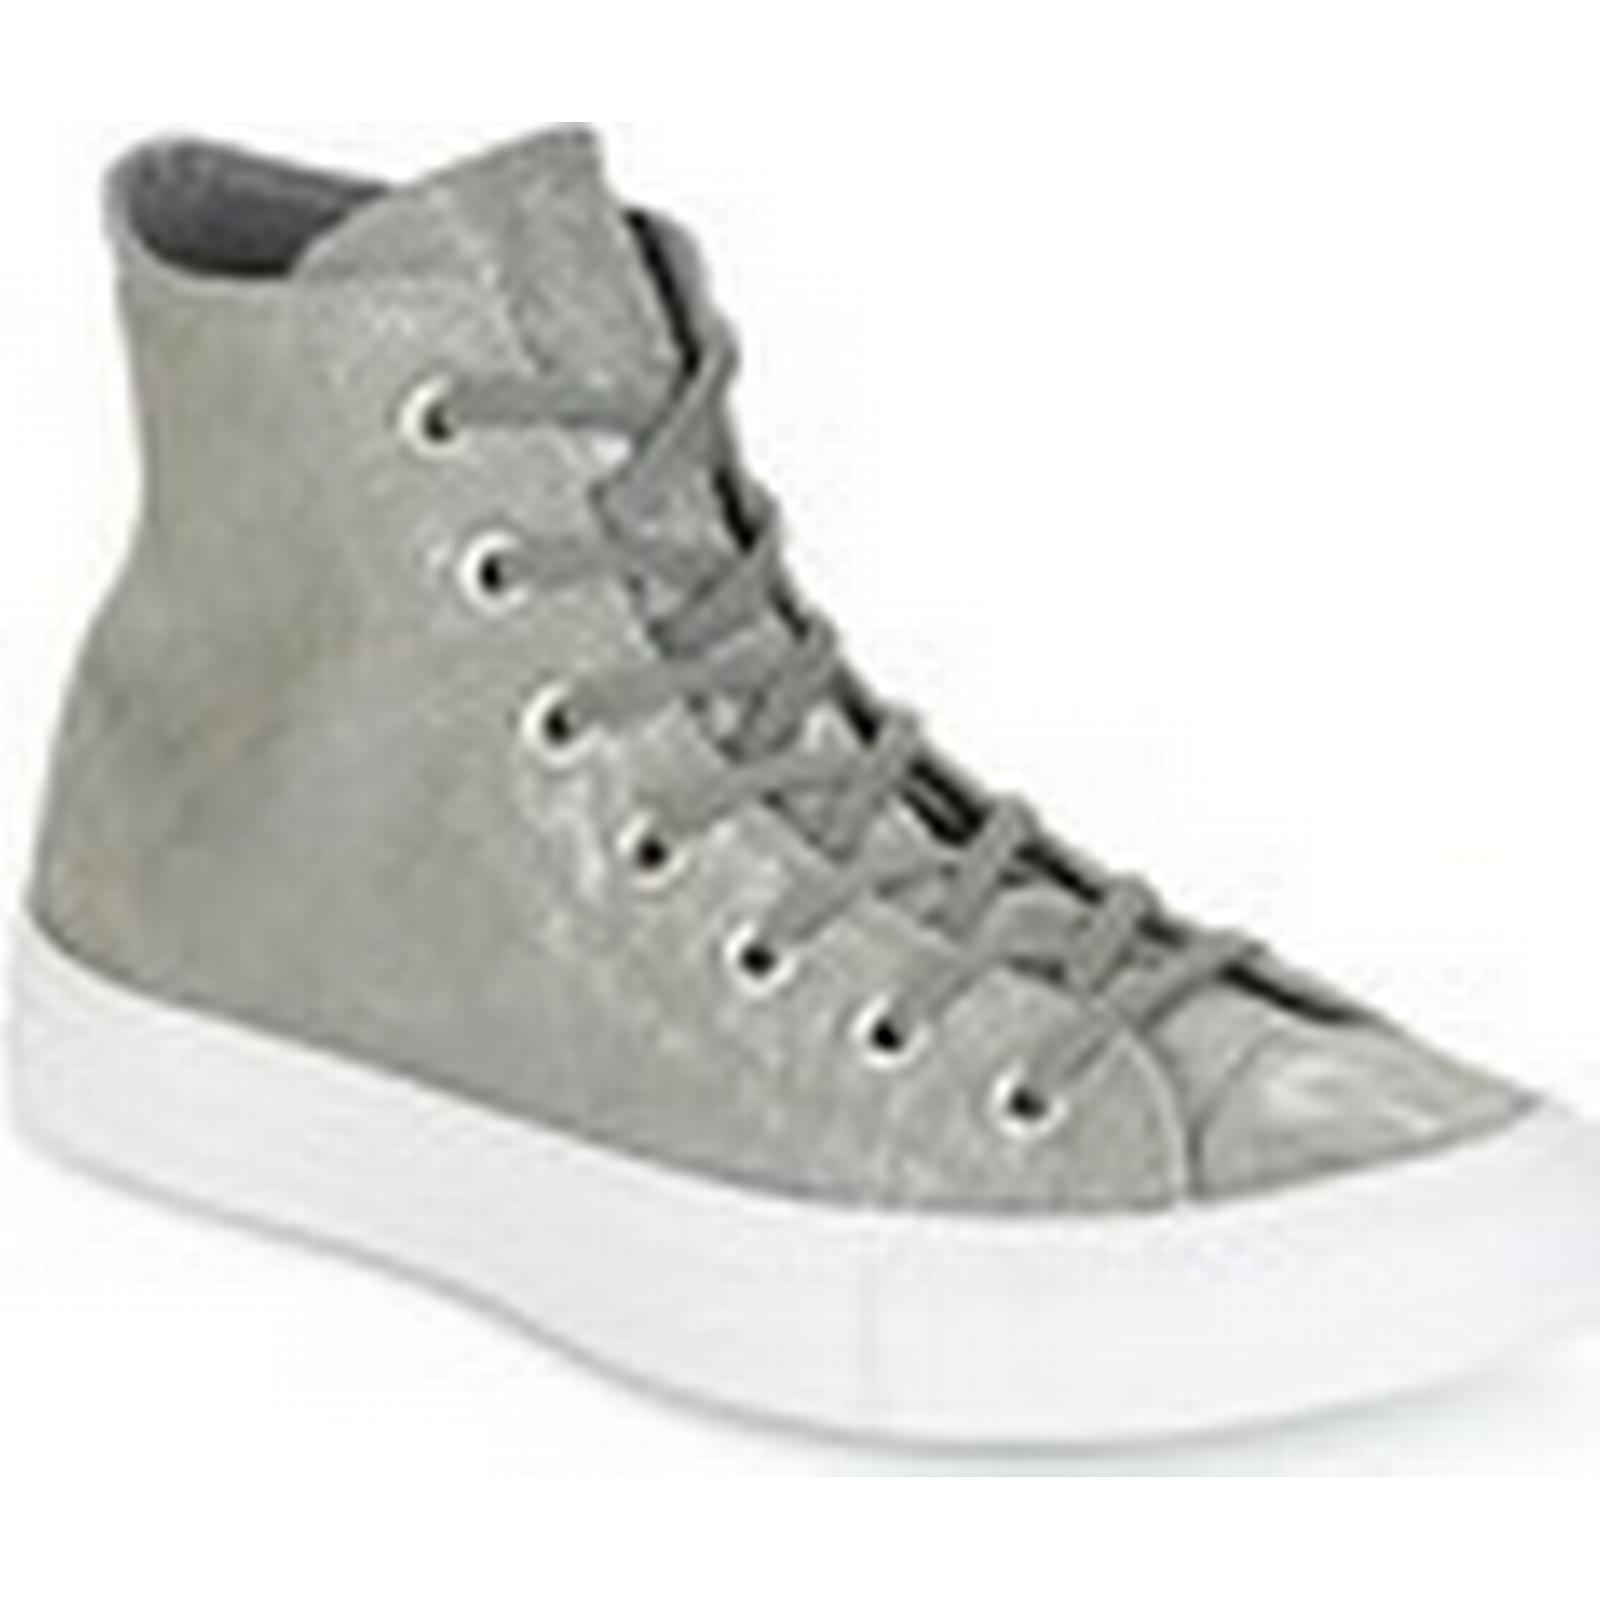 Converse  CHUCK TAYLOR ALL STAR SHIMMER SUEDE HI HI SUEDE MASON/MASON/WHITE  women's Shoes (High-top Trainers) in Grey 9f4bd3